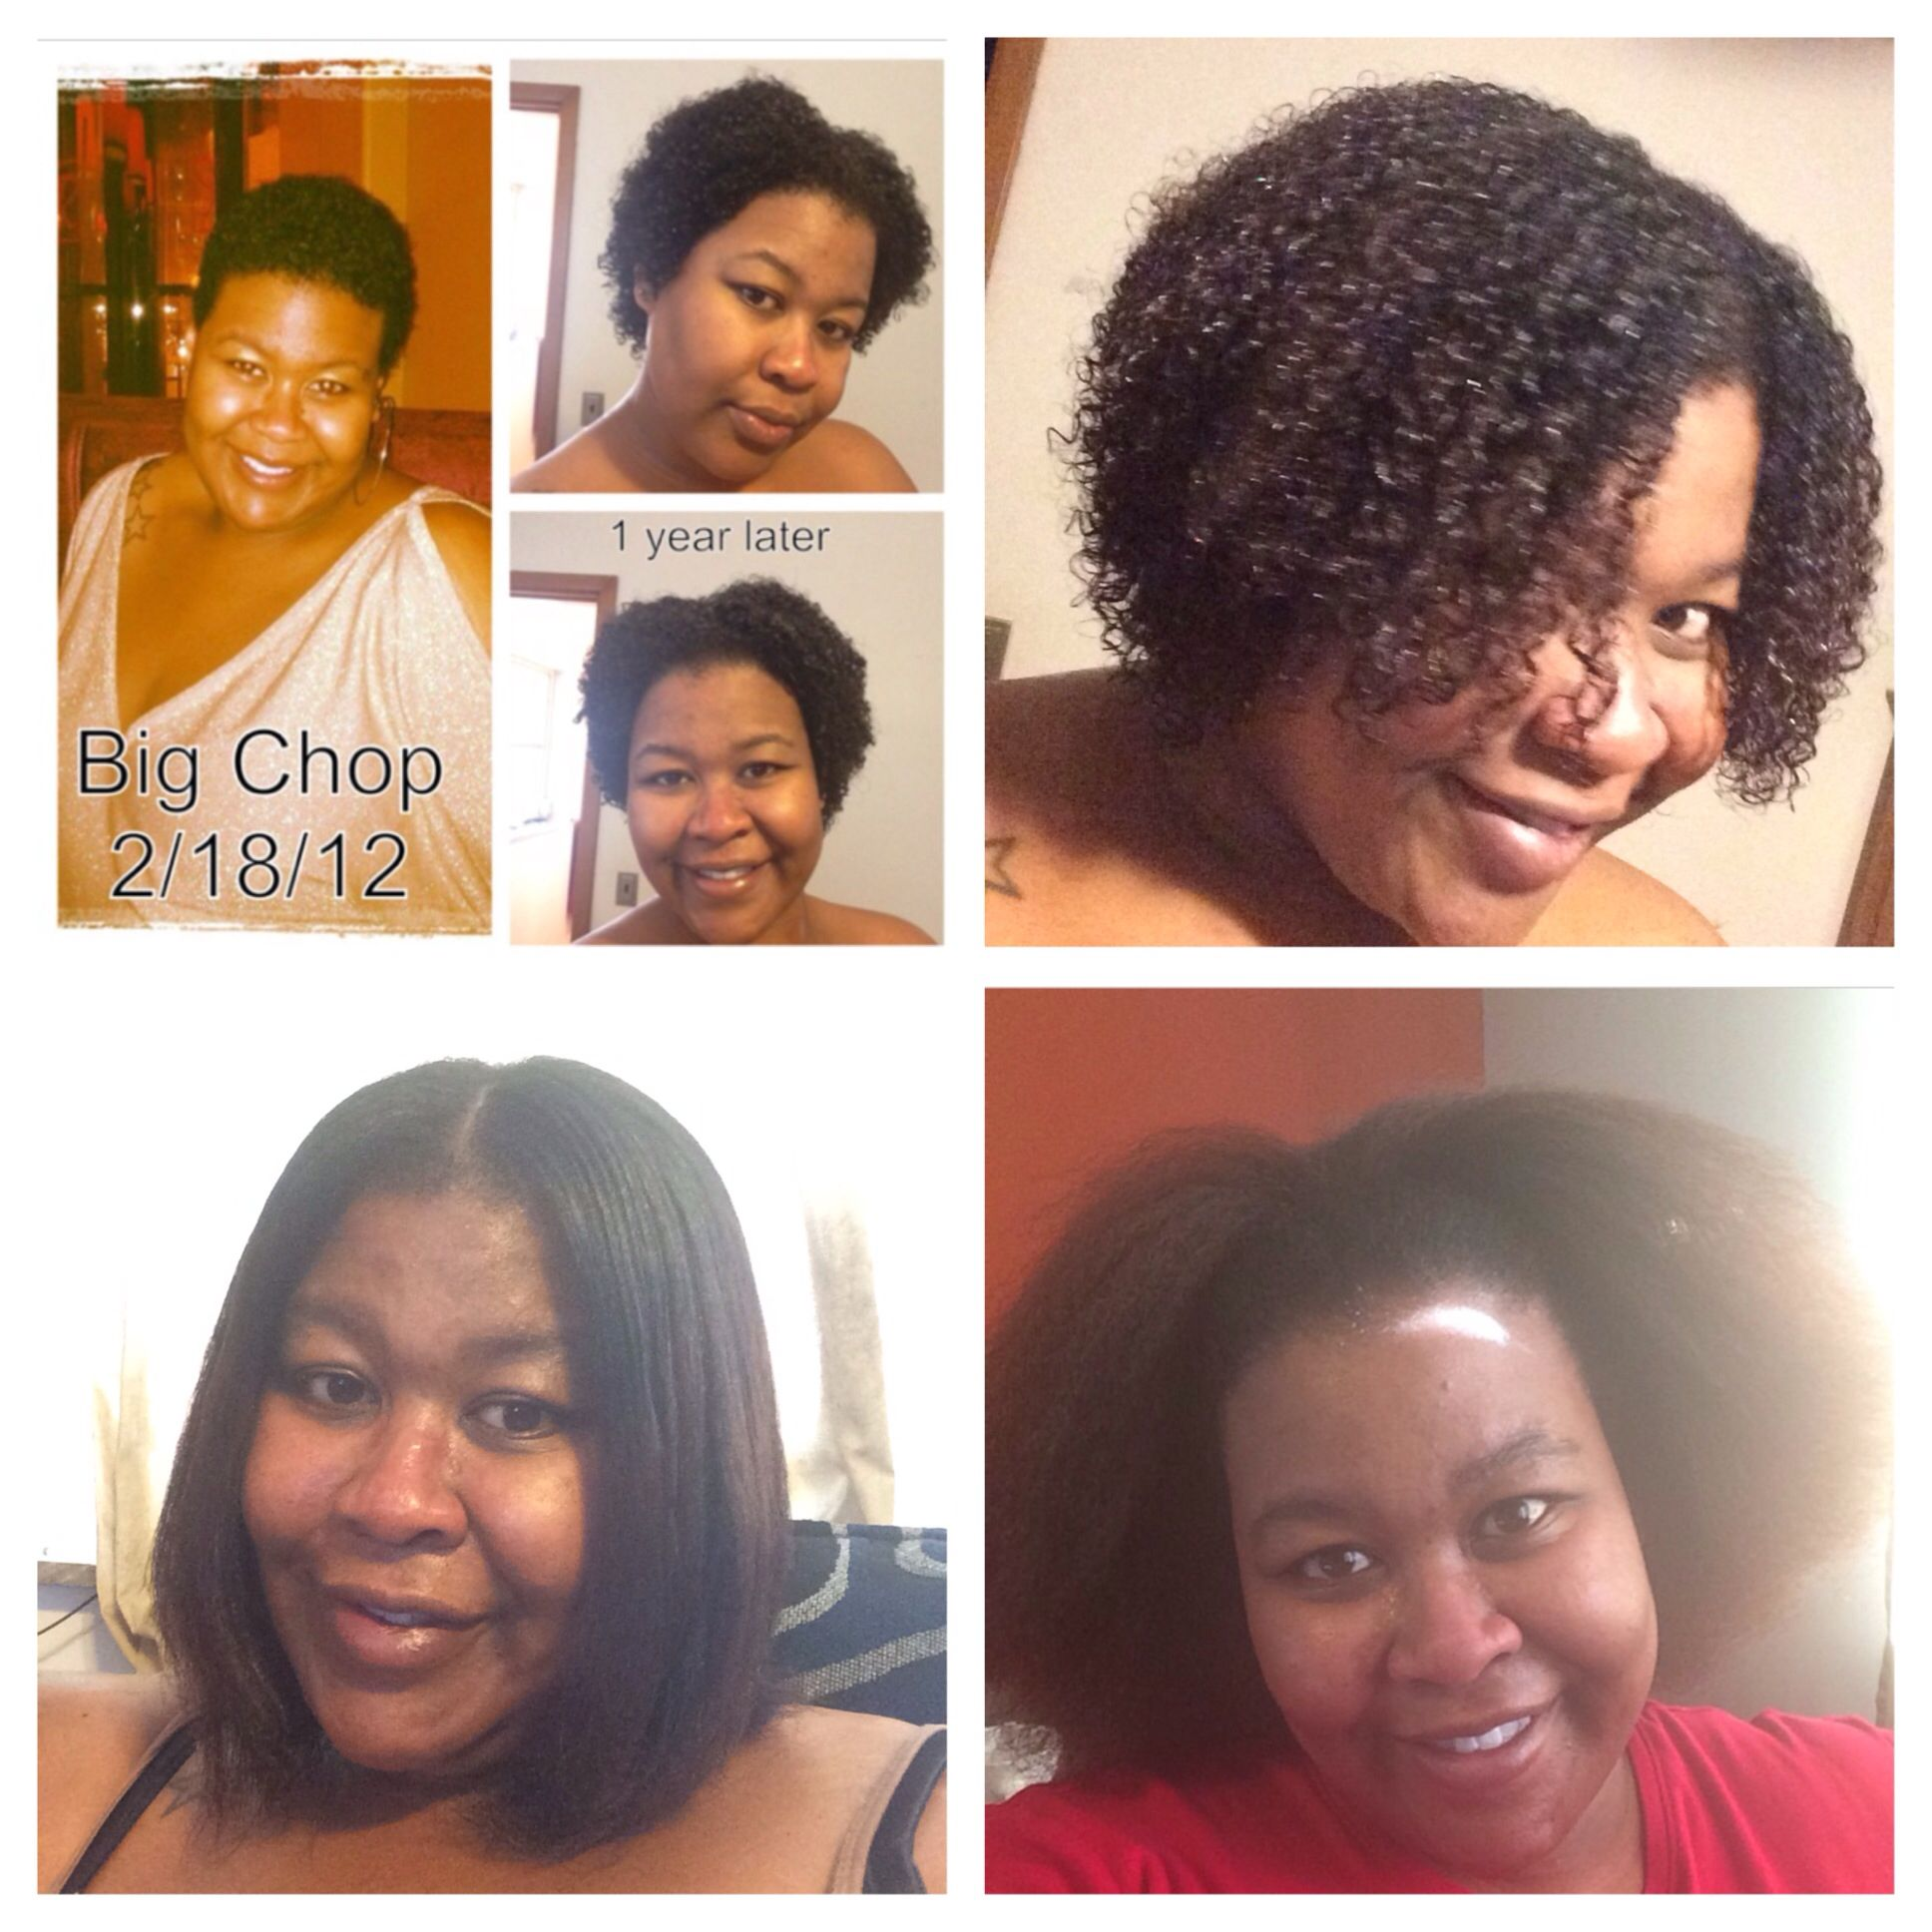 my natural hair journey. 2 years after big chop! #bigchop